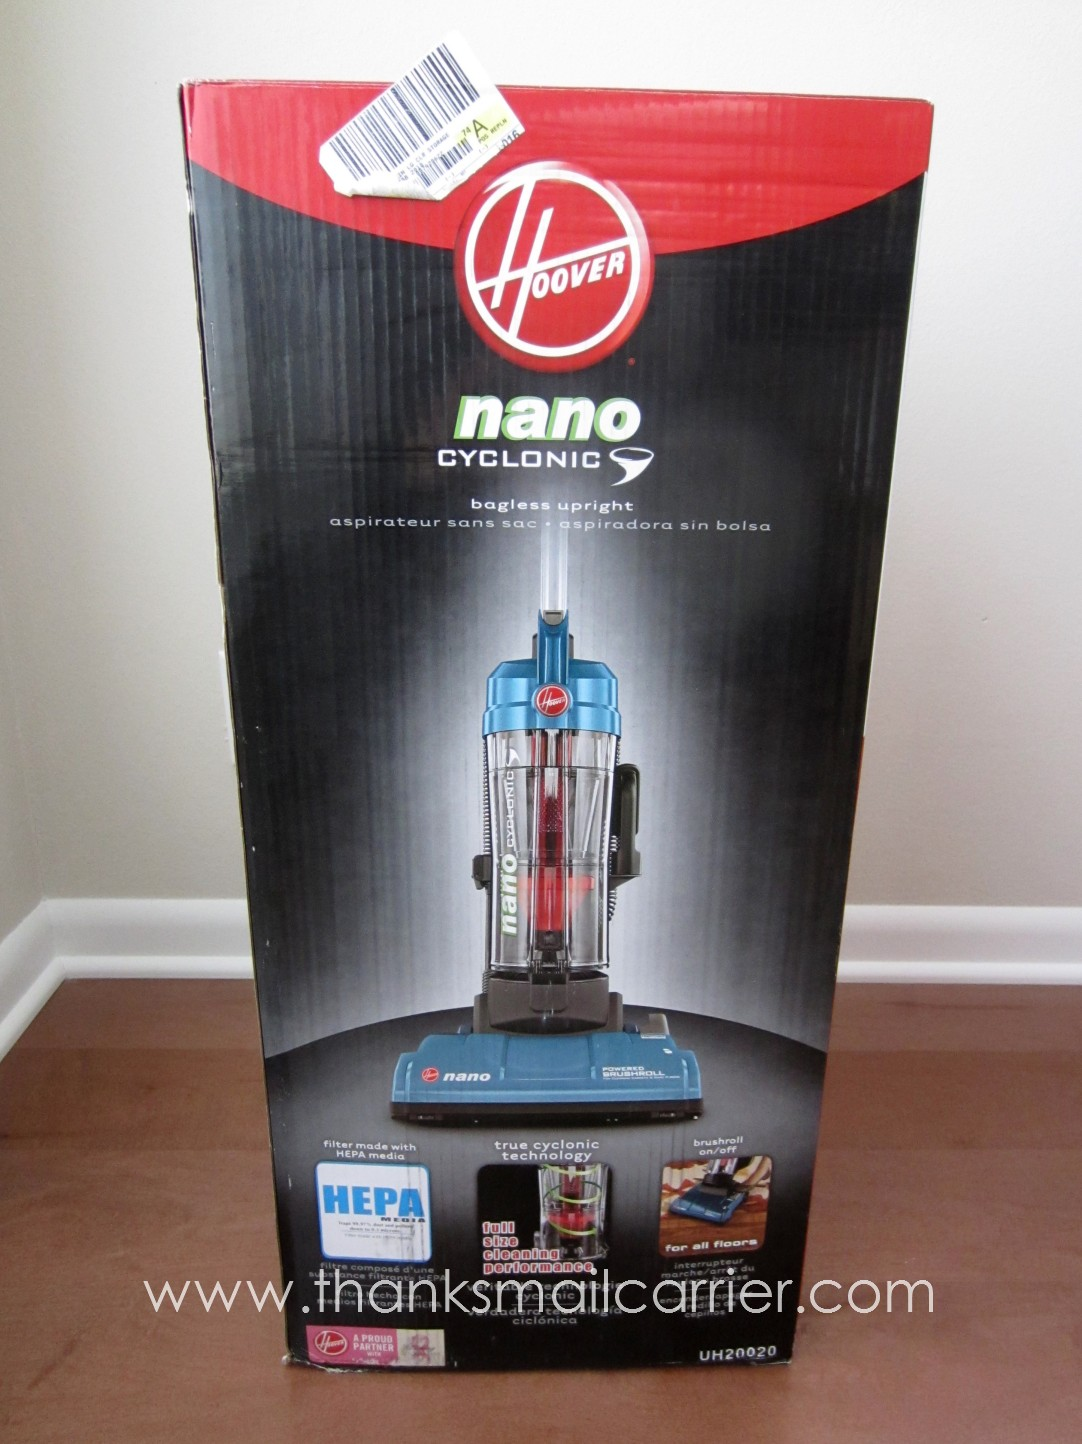 Thanks Mail Carrier Hoover Nano Cyclonic Compact